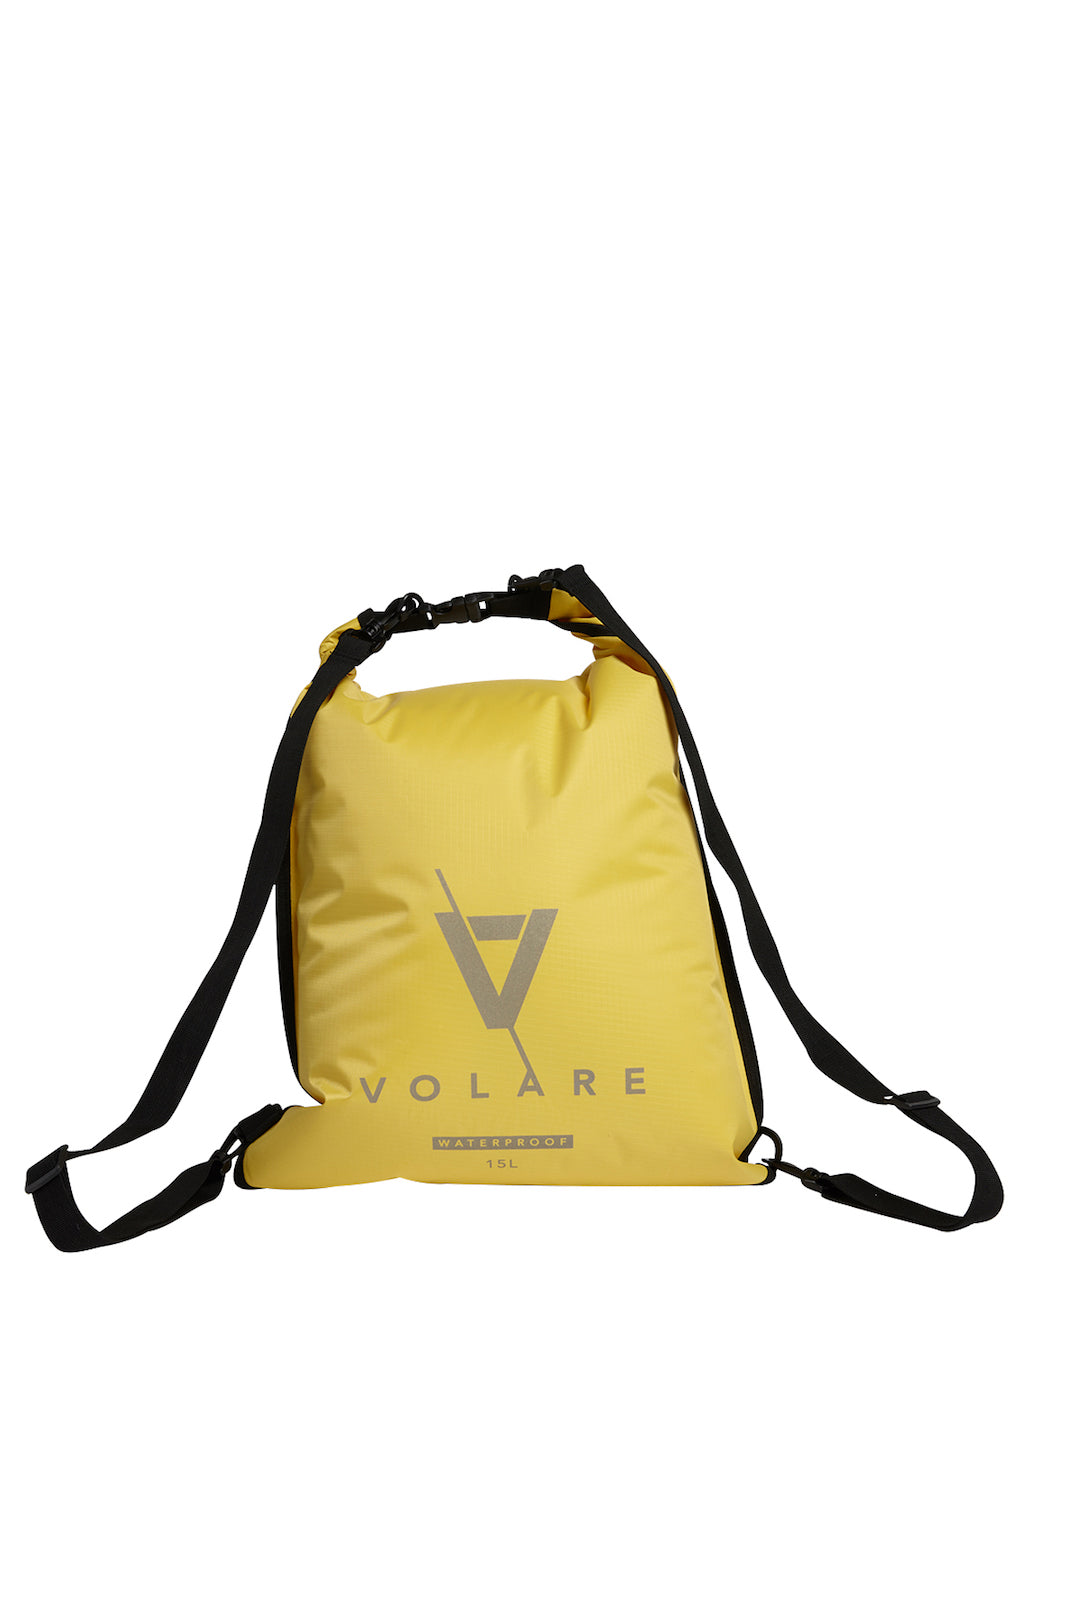 Waterproof Dry Flat Bag - 15L